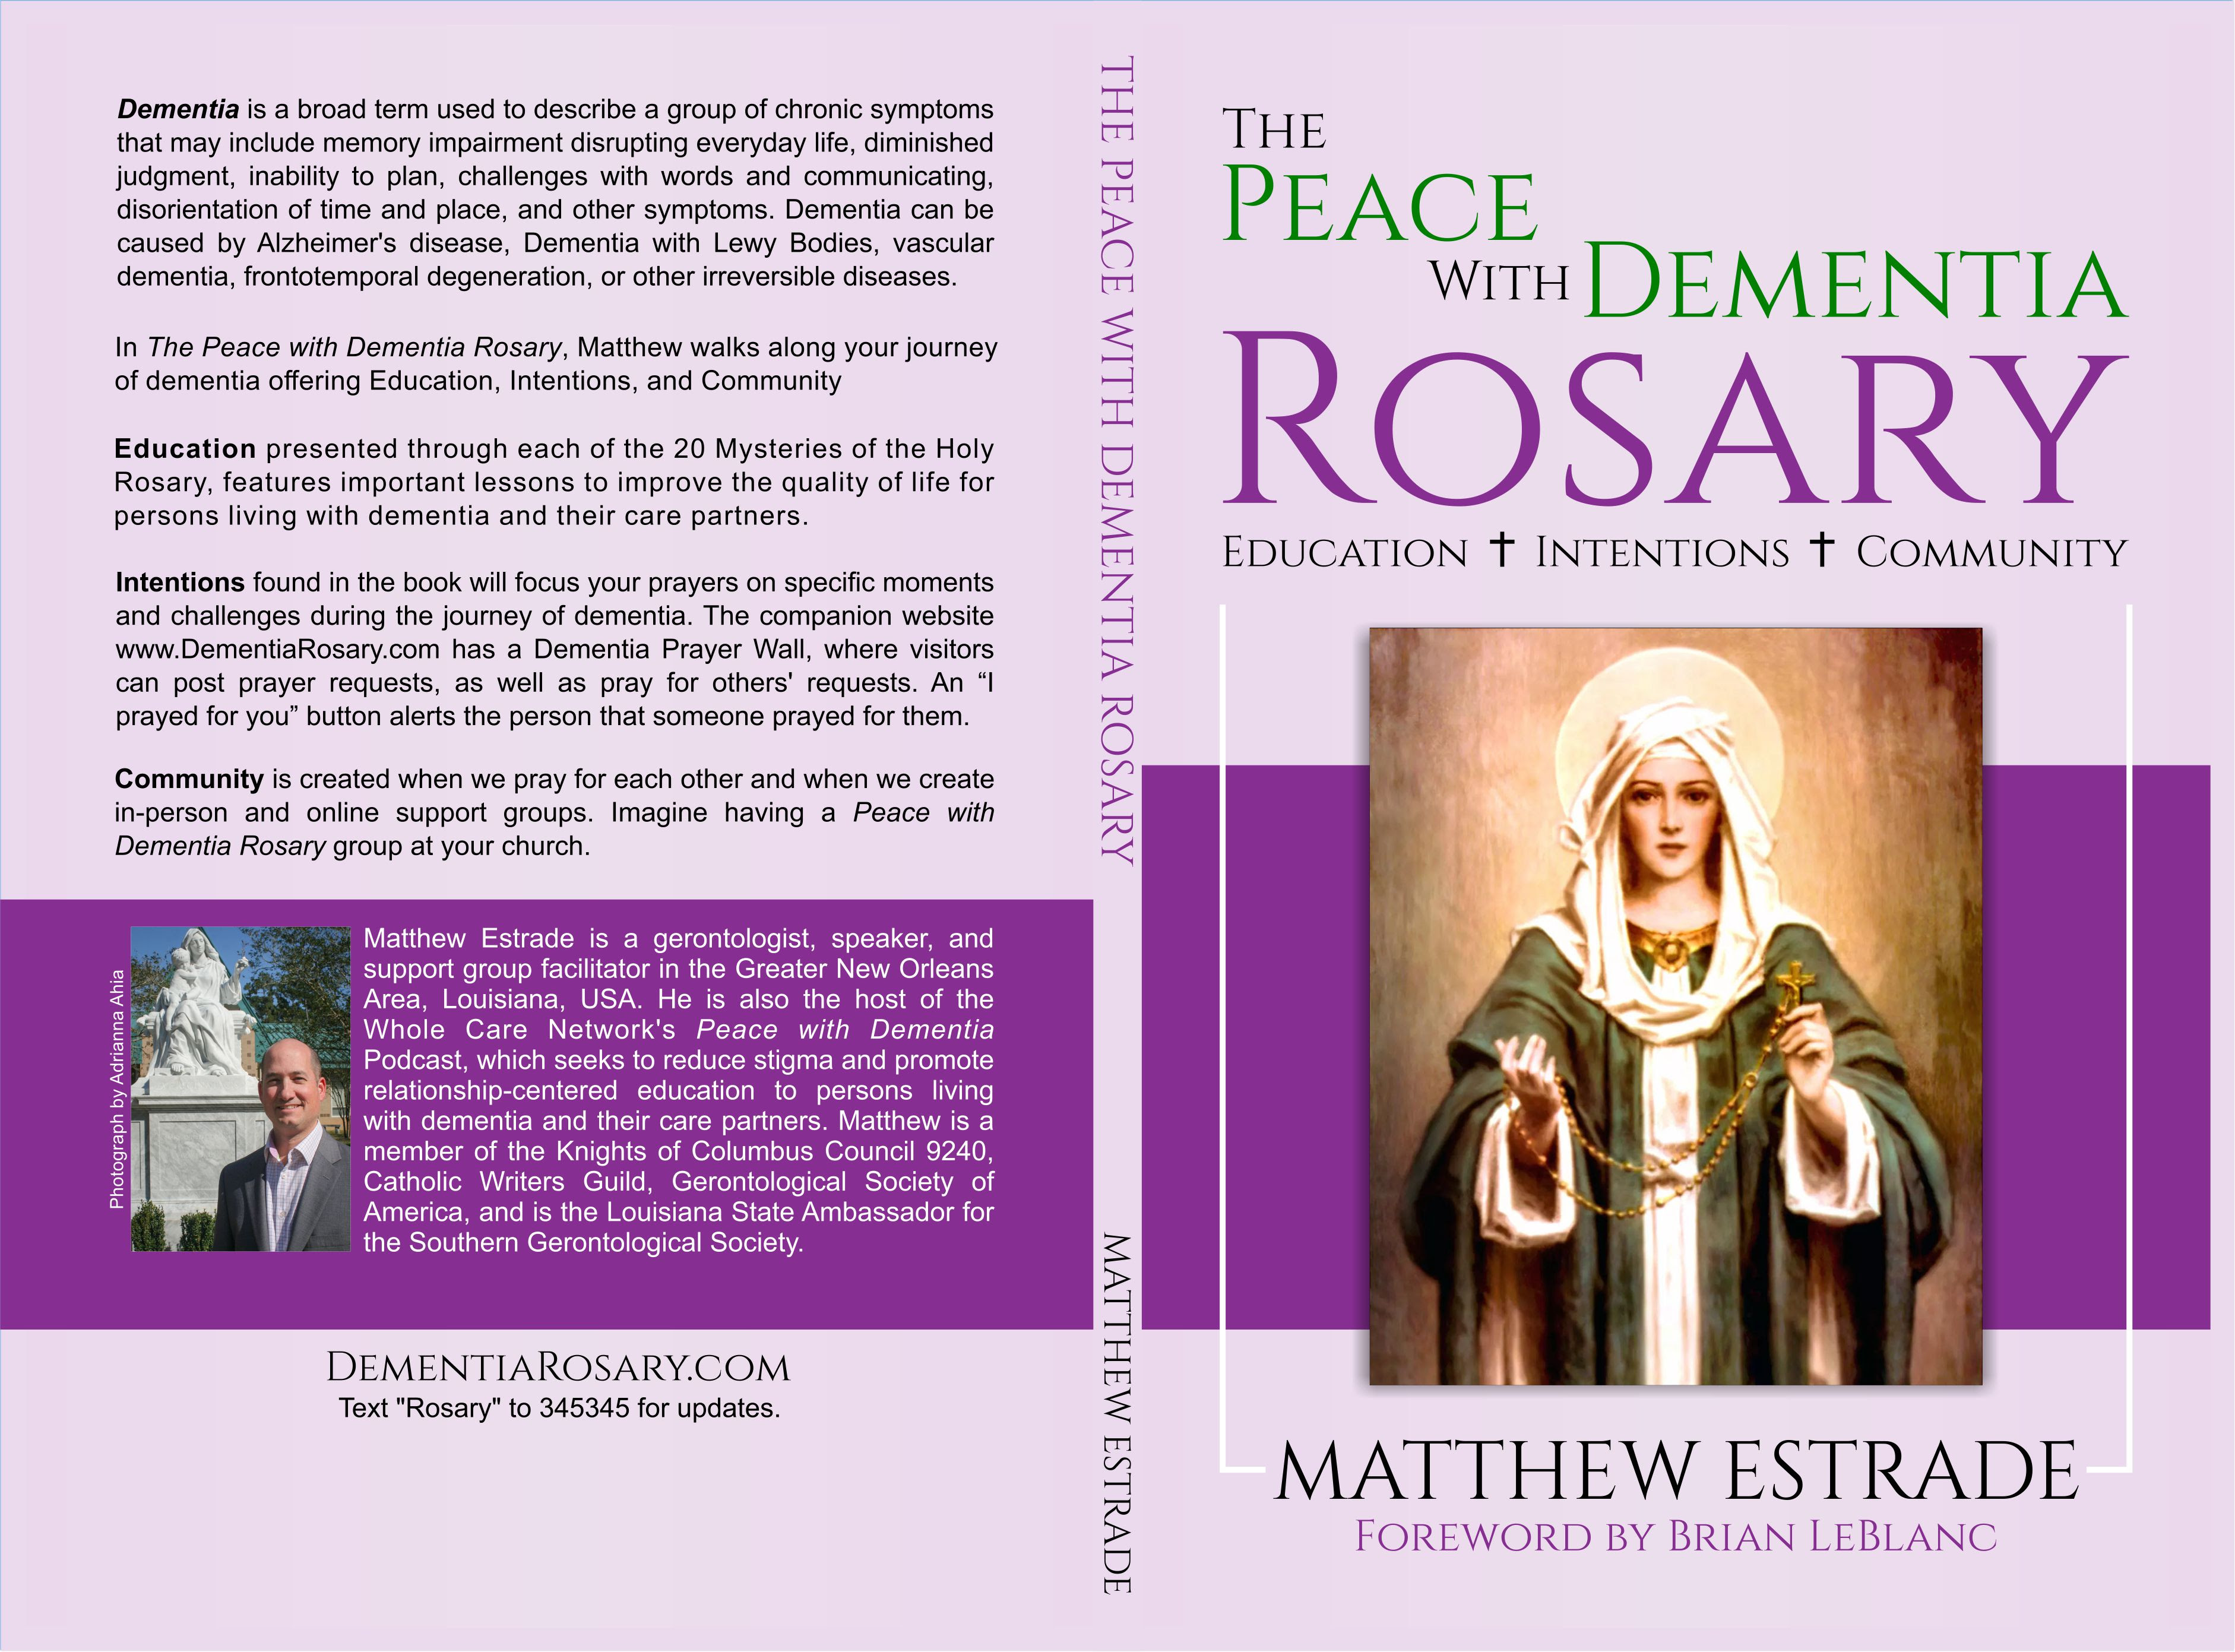 The Peace with Dementia Rosary book